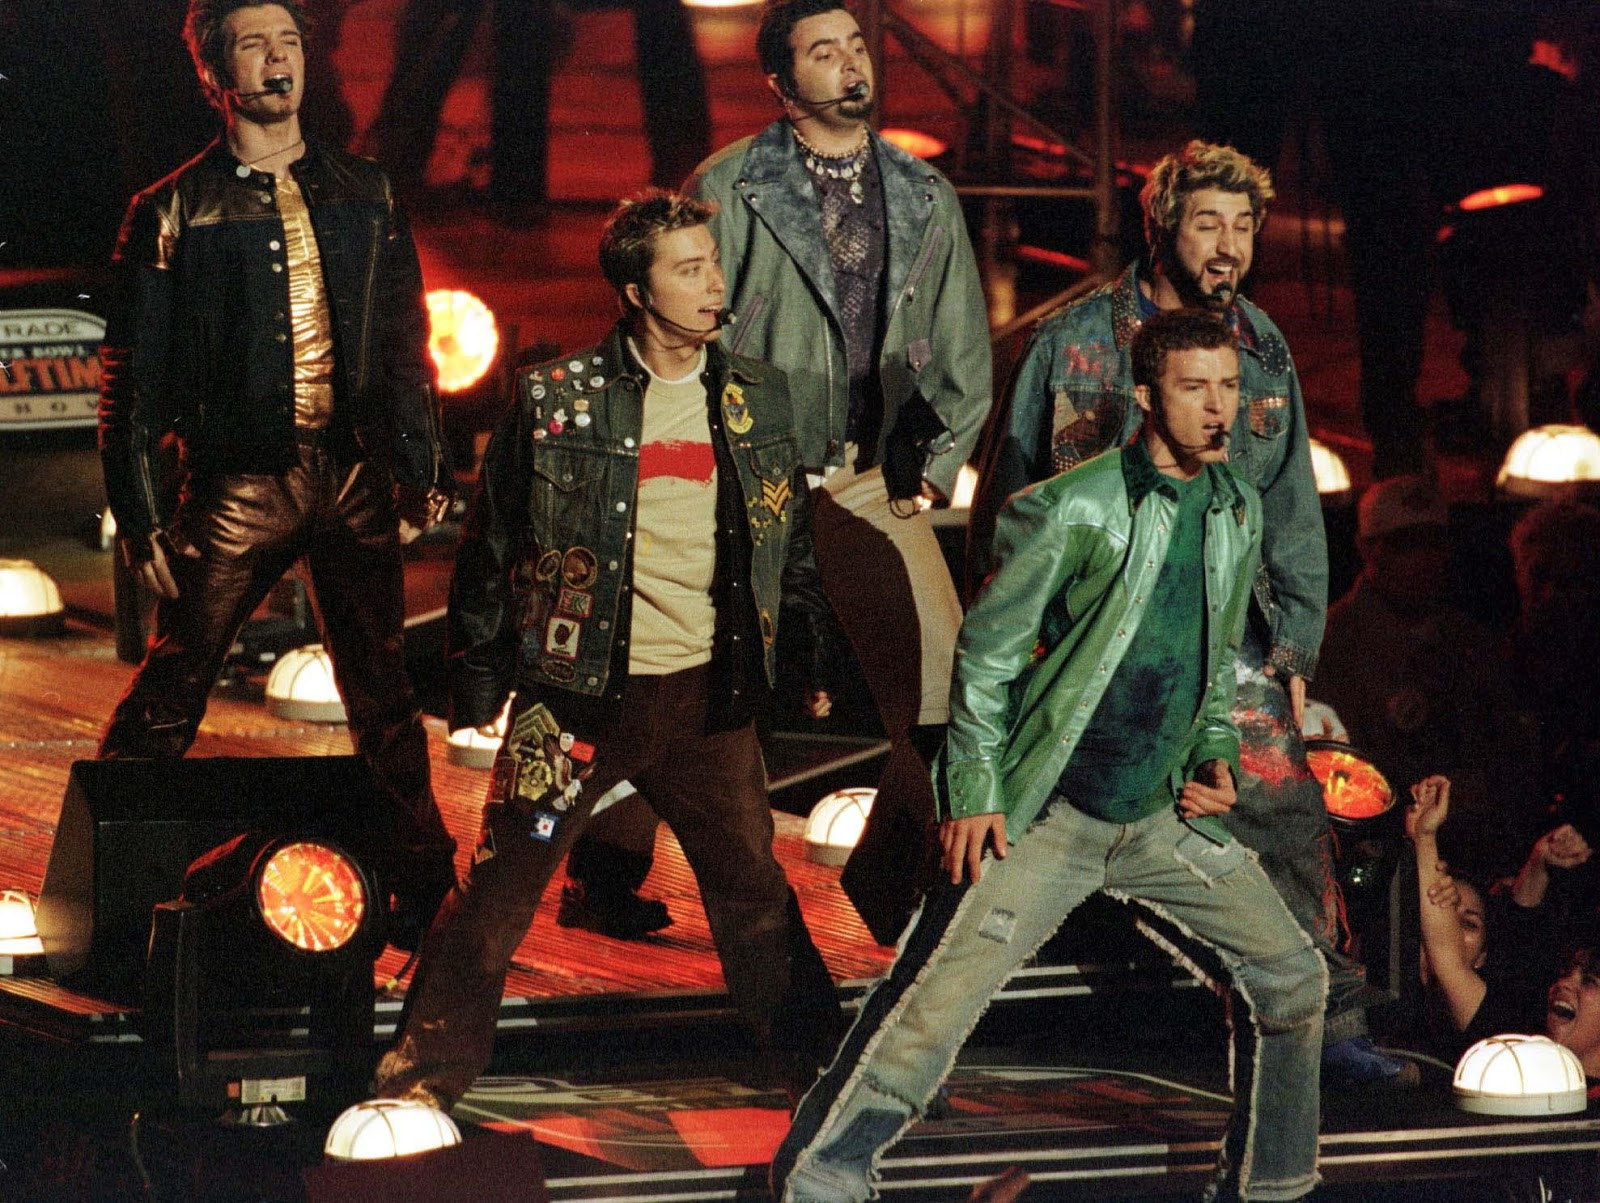 An image of NSYNC performing on stage